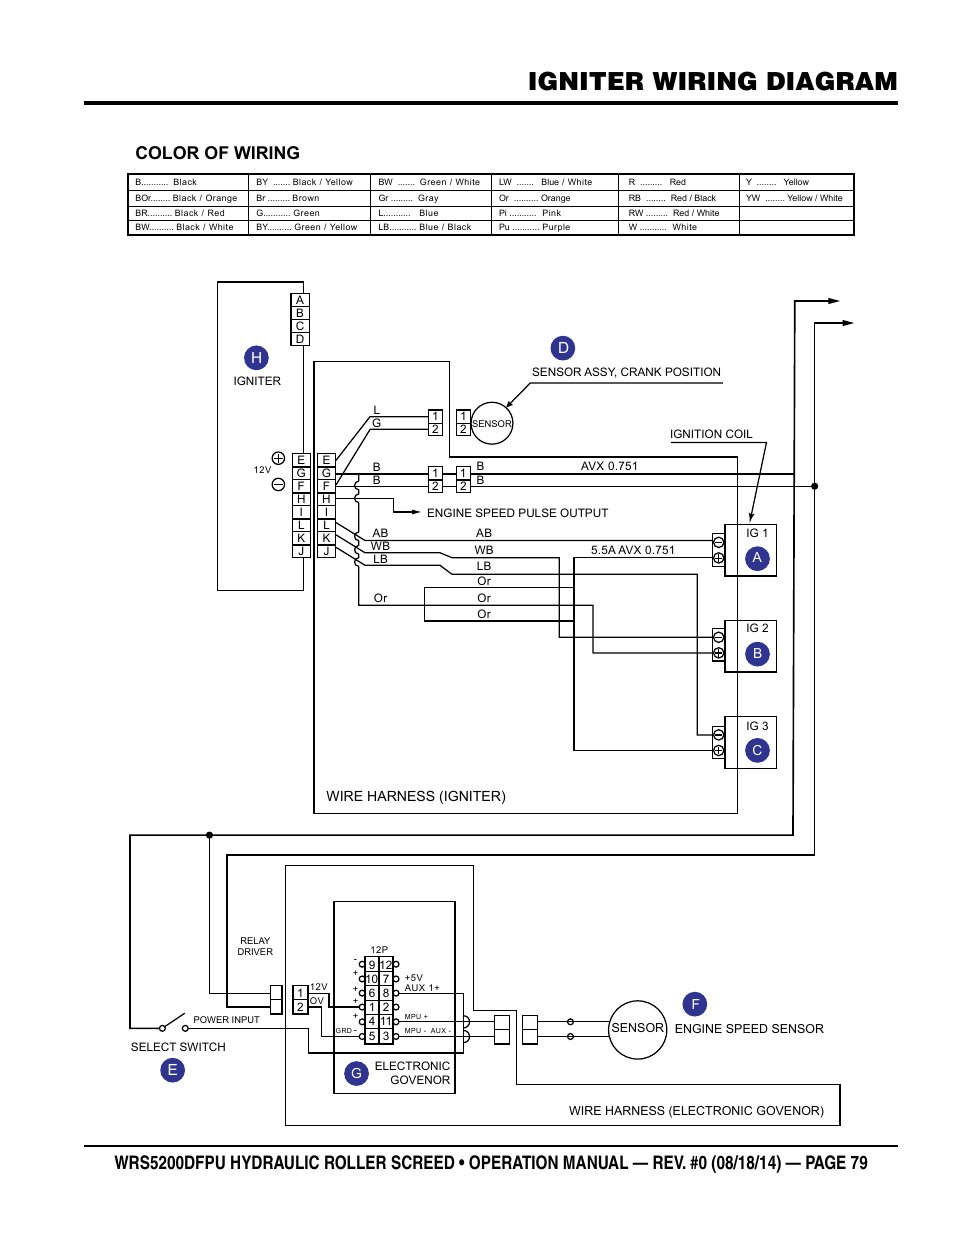 igniter wiring diagram color of wiring hd e multiquip igniter wiring diagram color of wiring hd e multiquip wrs5200dfpu kubota wg972